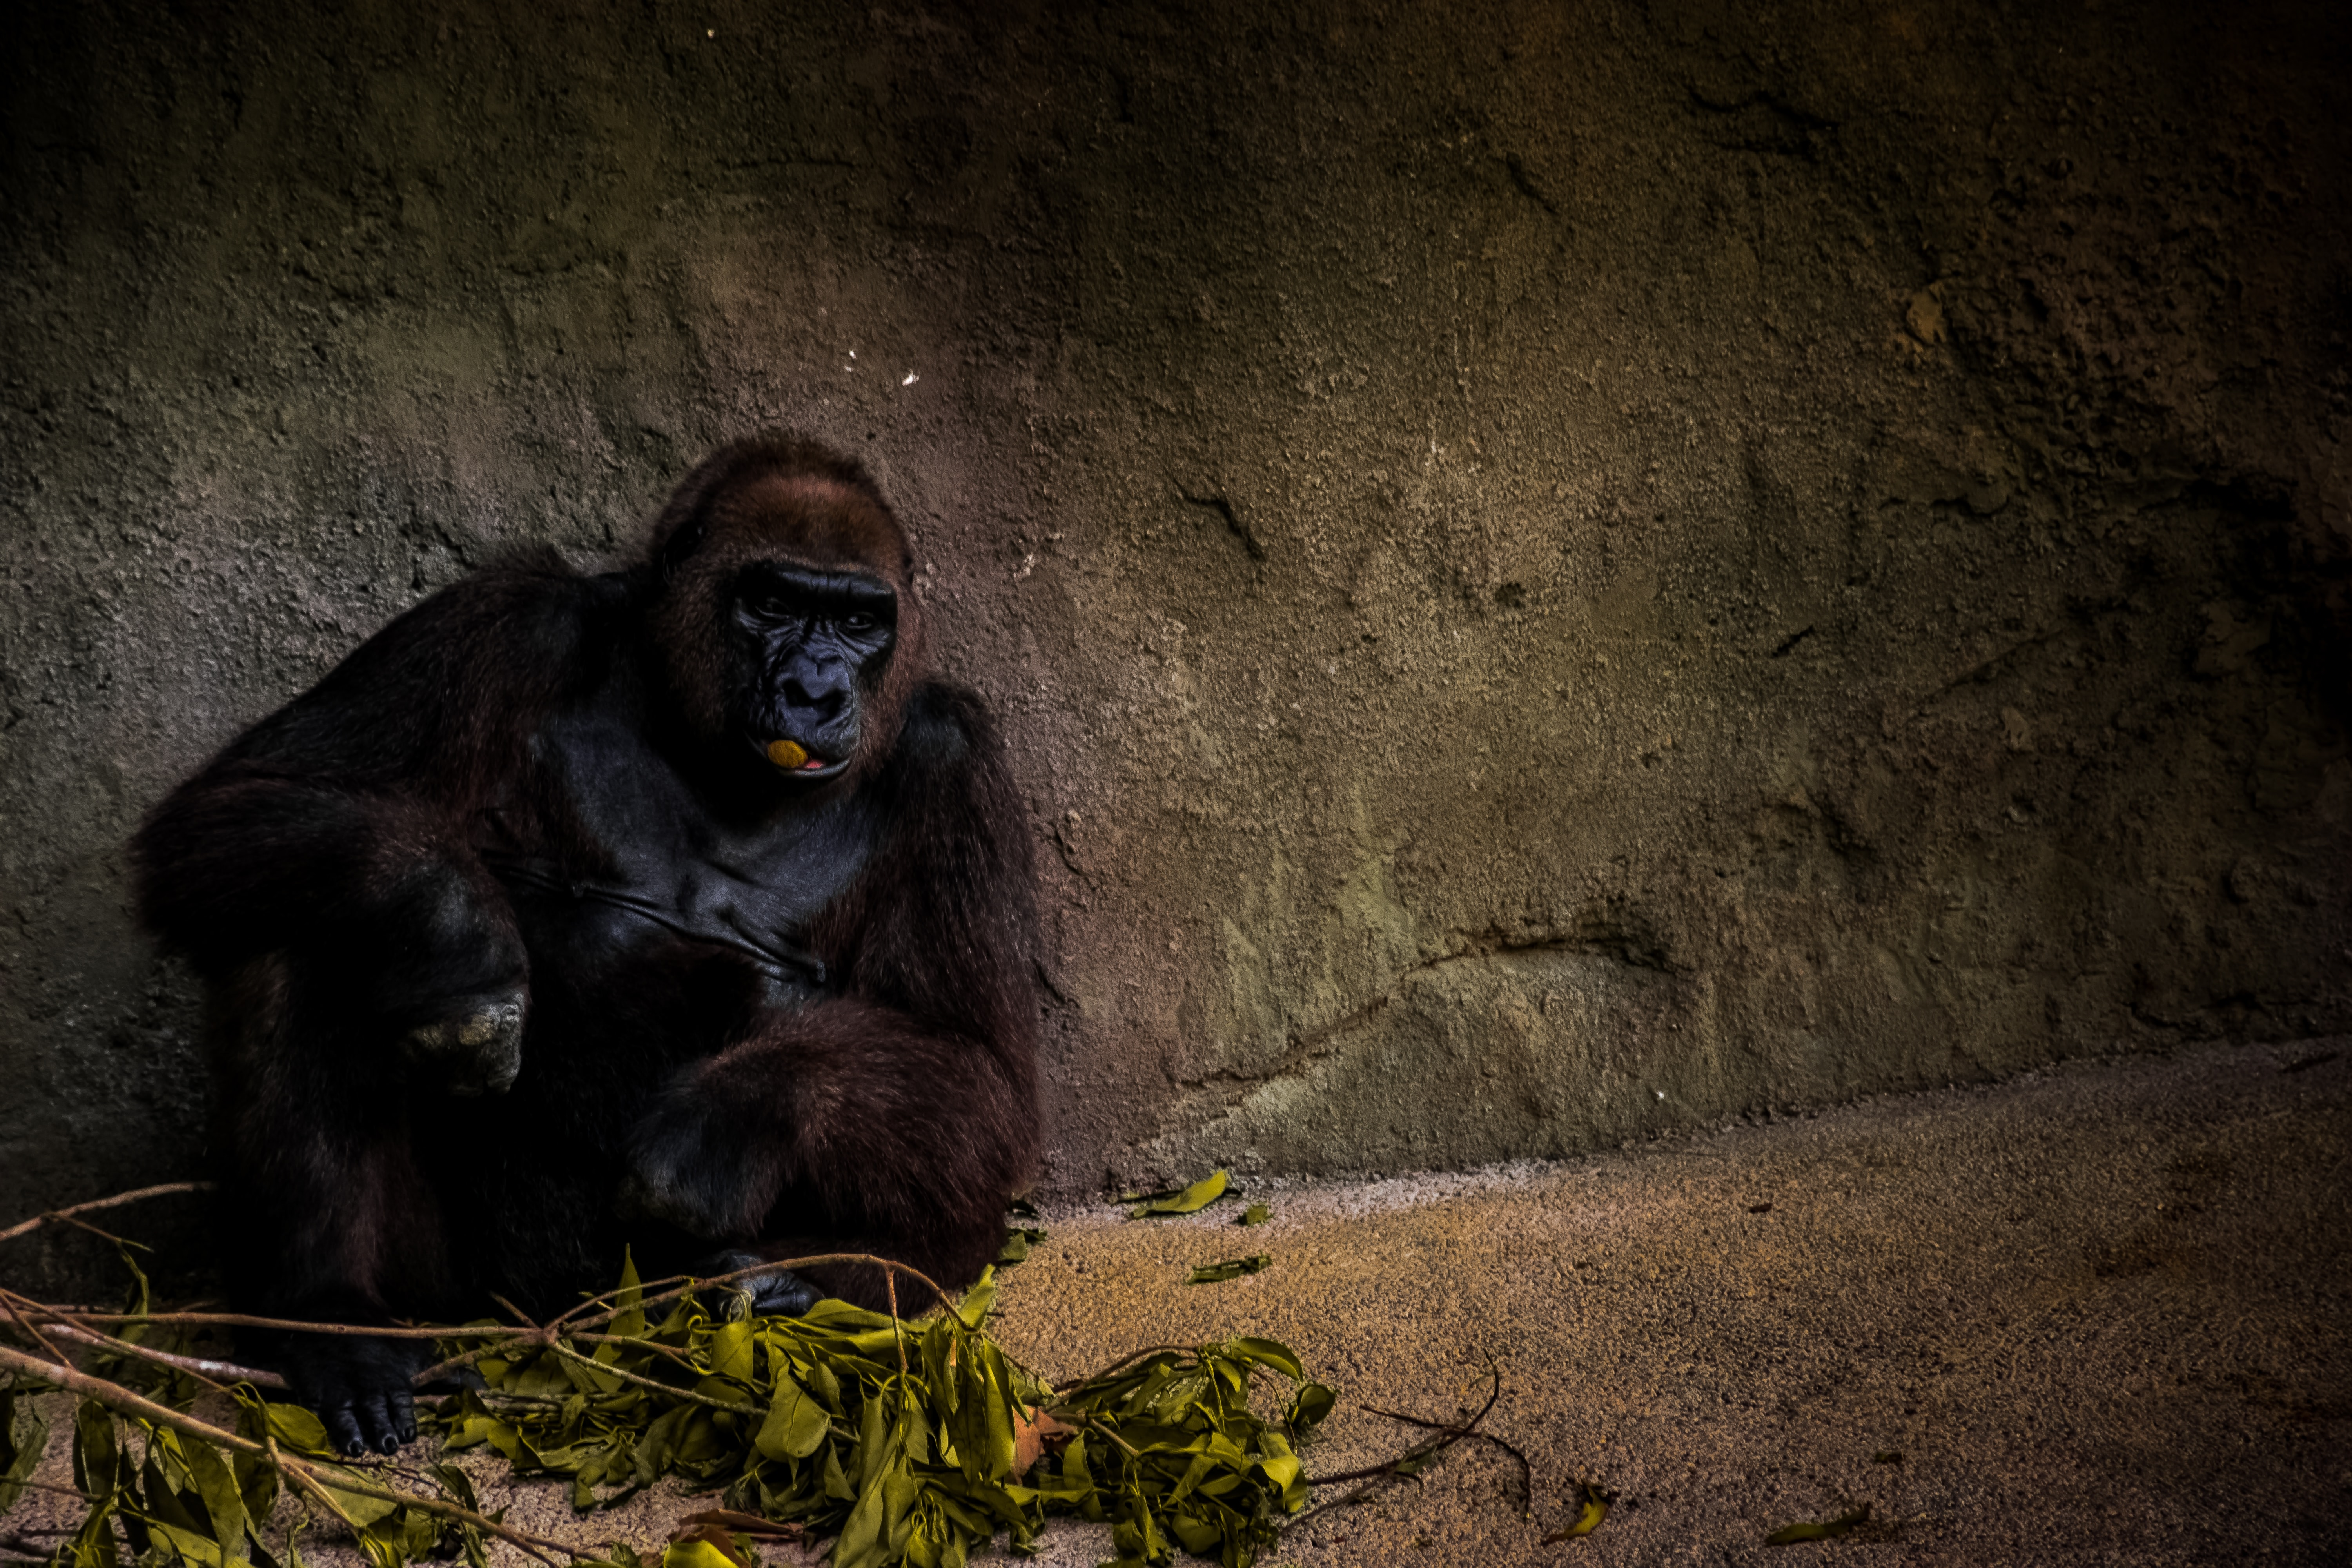 Gorilla sits alone by leaves in a stone enclosure at the zoo